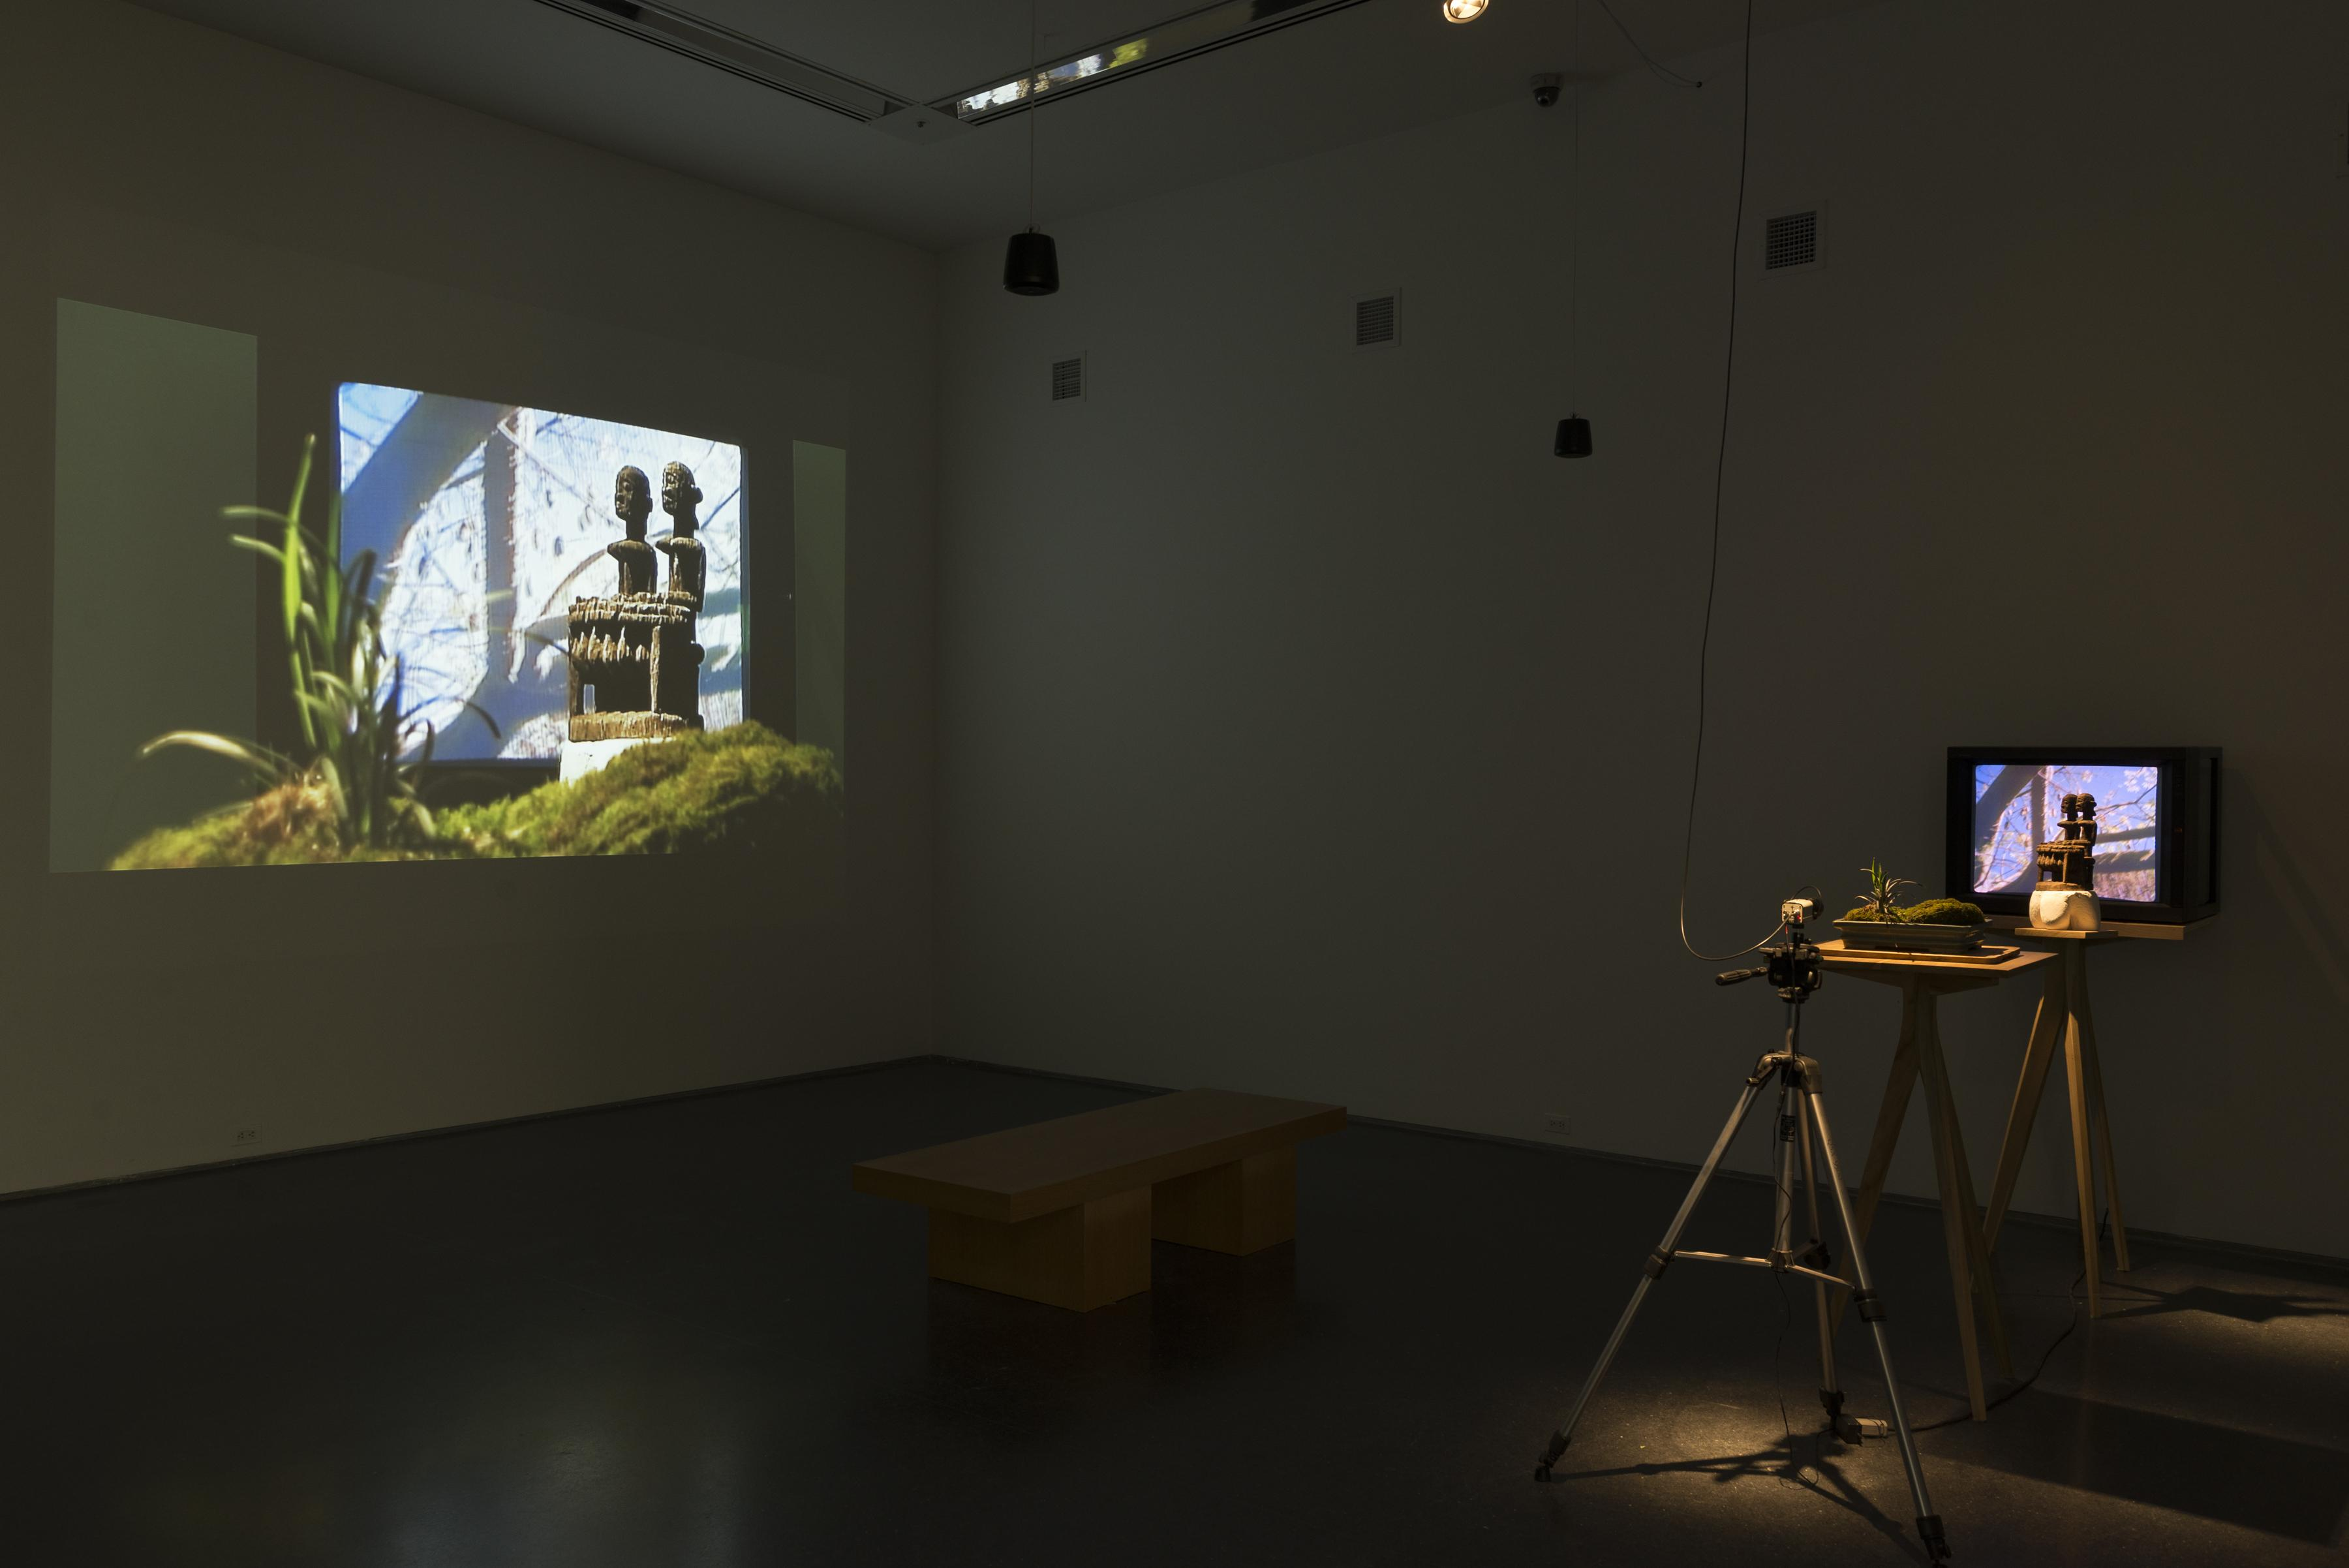 An image projected on the wall is created by three tripods in a row: the first holds a camera, the second a miniature landscape, and the third a small sculpture in front of a monitor depicting tree branches and the sky.